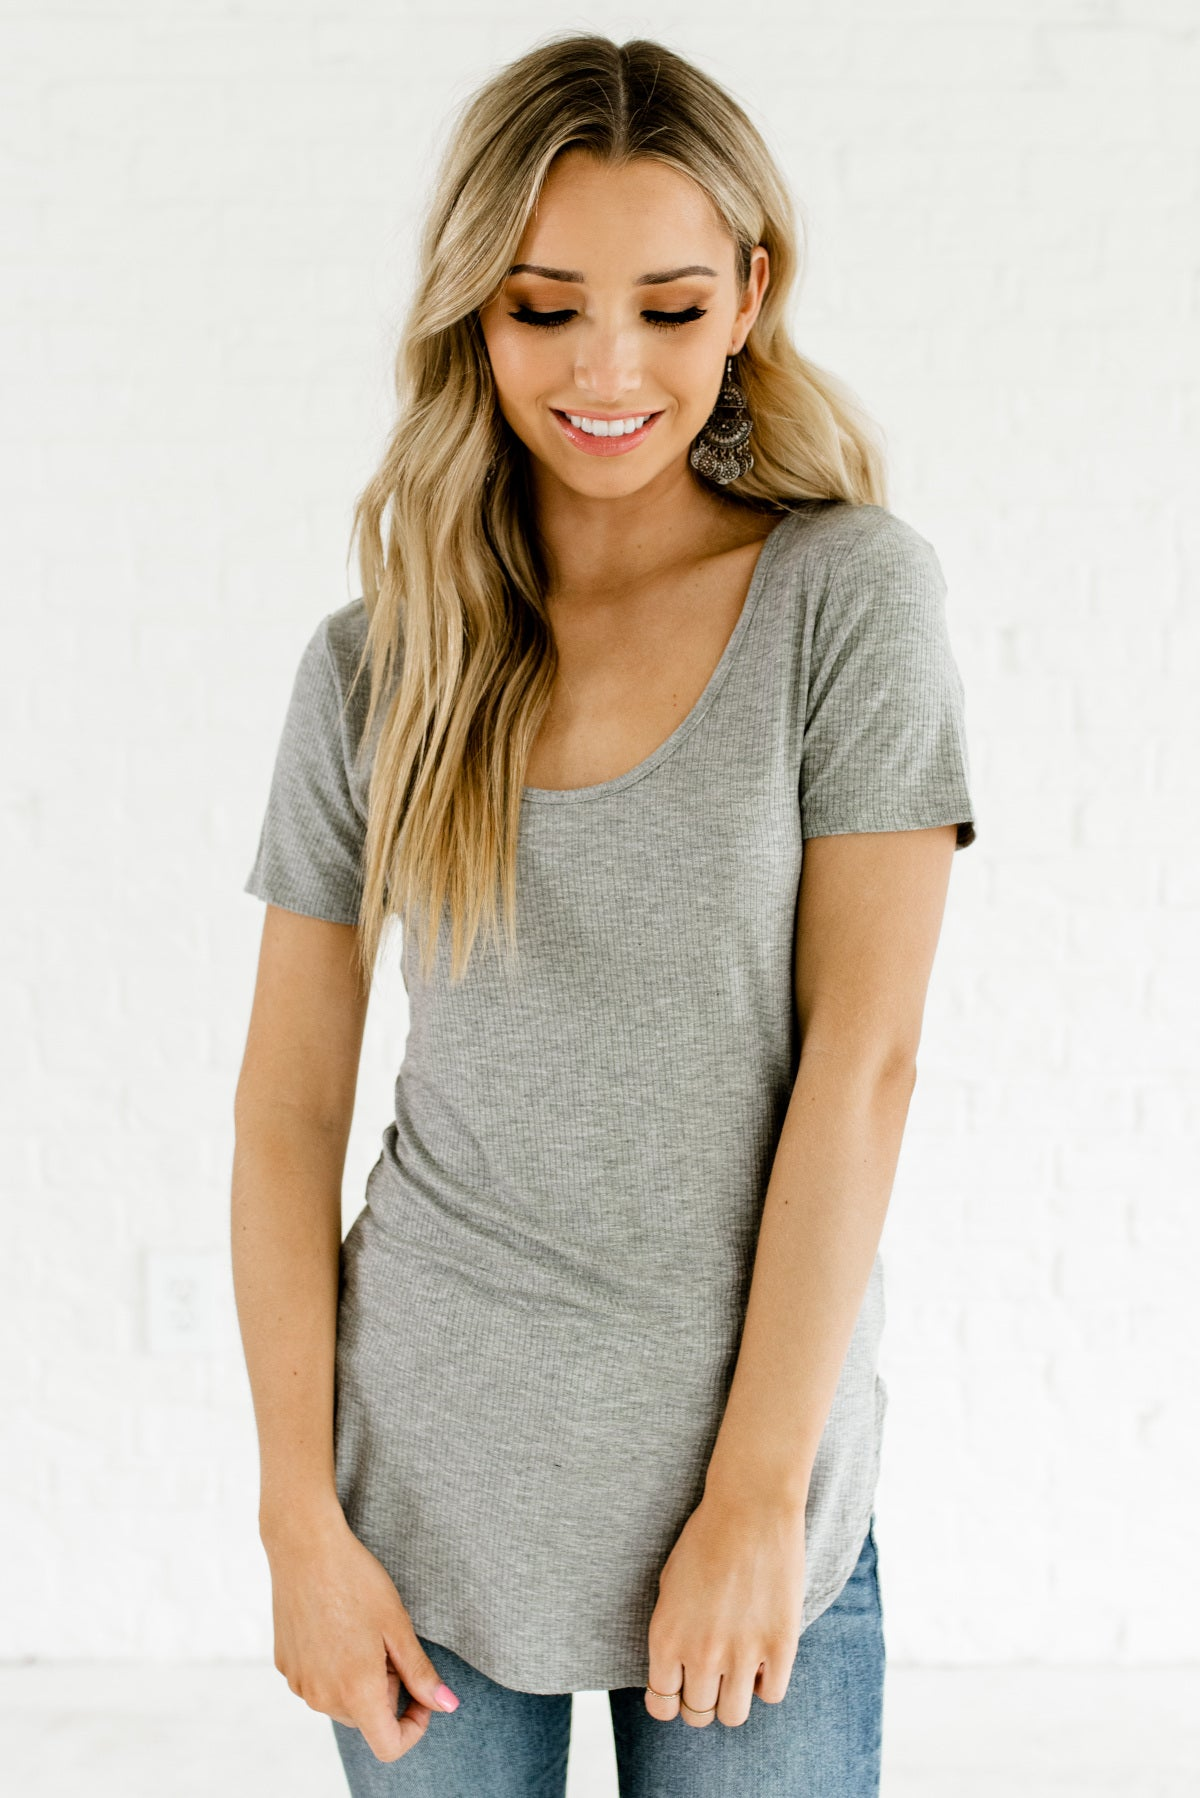 Heather Gray Women's Comfortable and Casual Boutique Tops